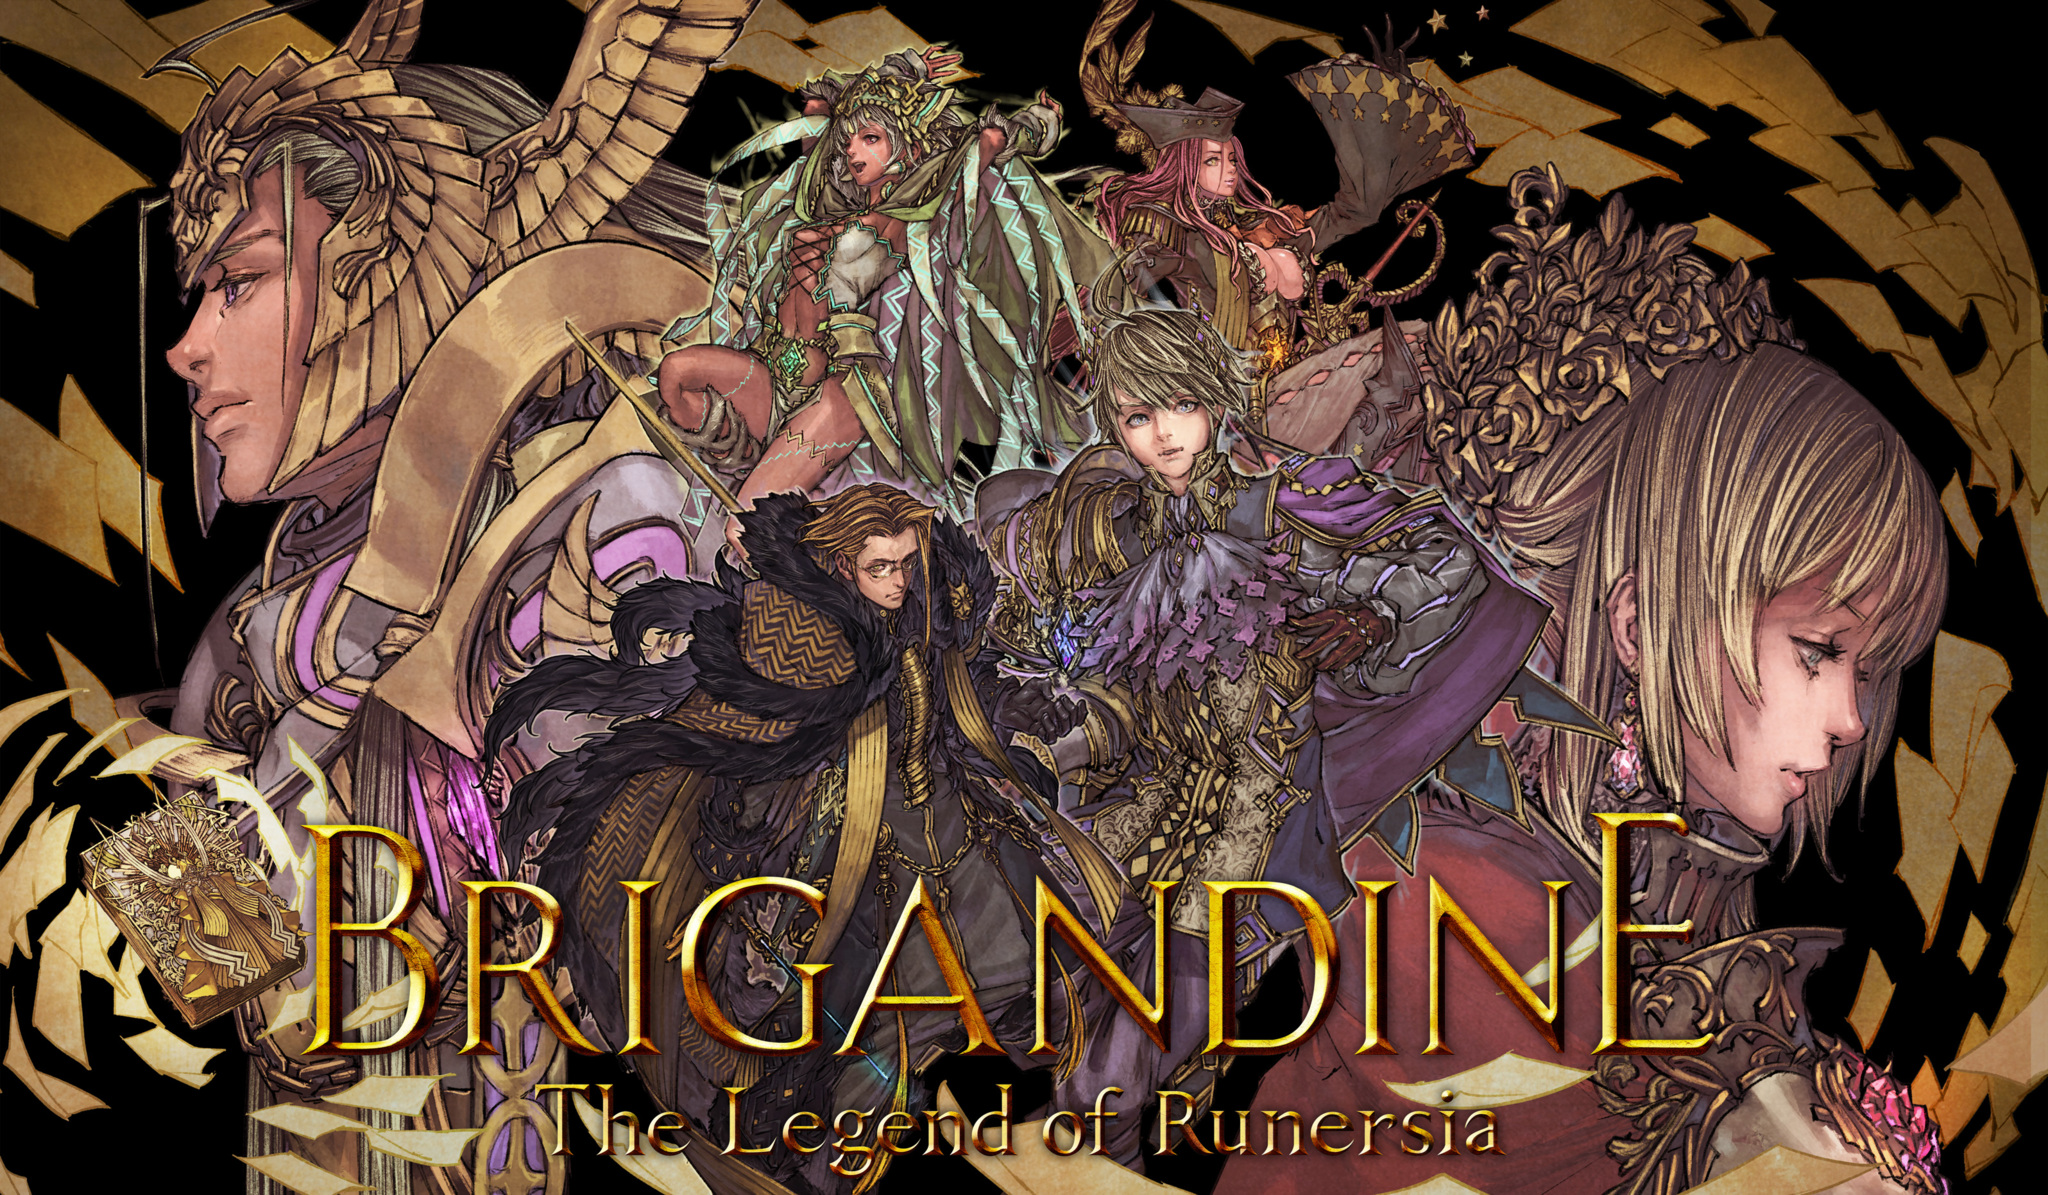 Brigandine: The Legend of Runersia Is Out Now On Nintendo Switch